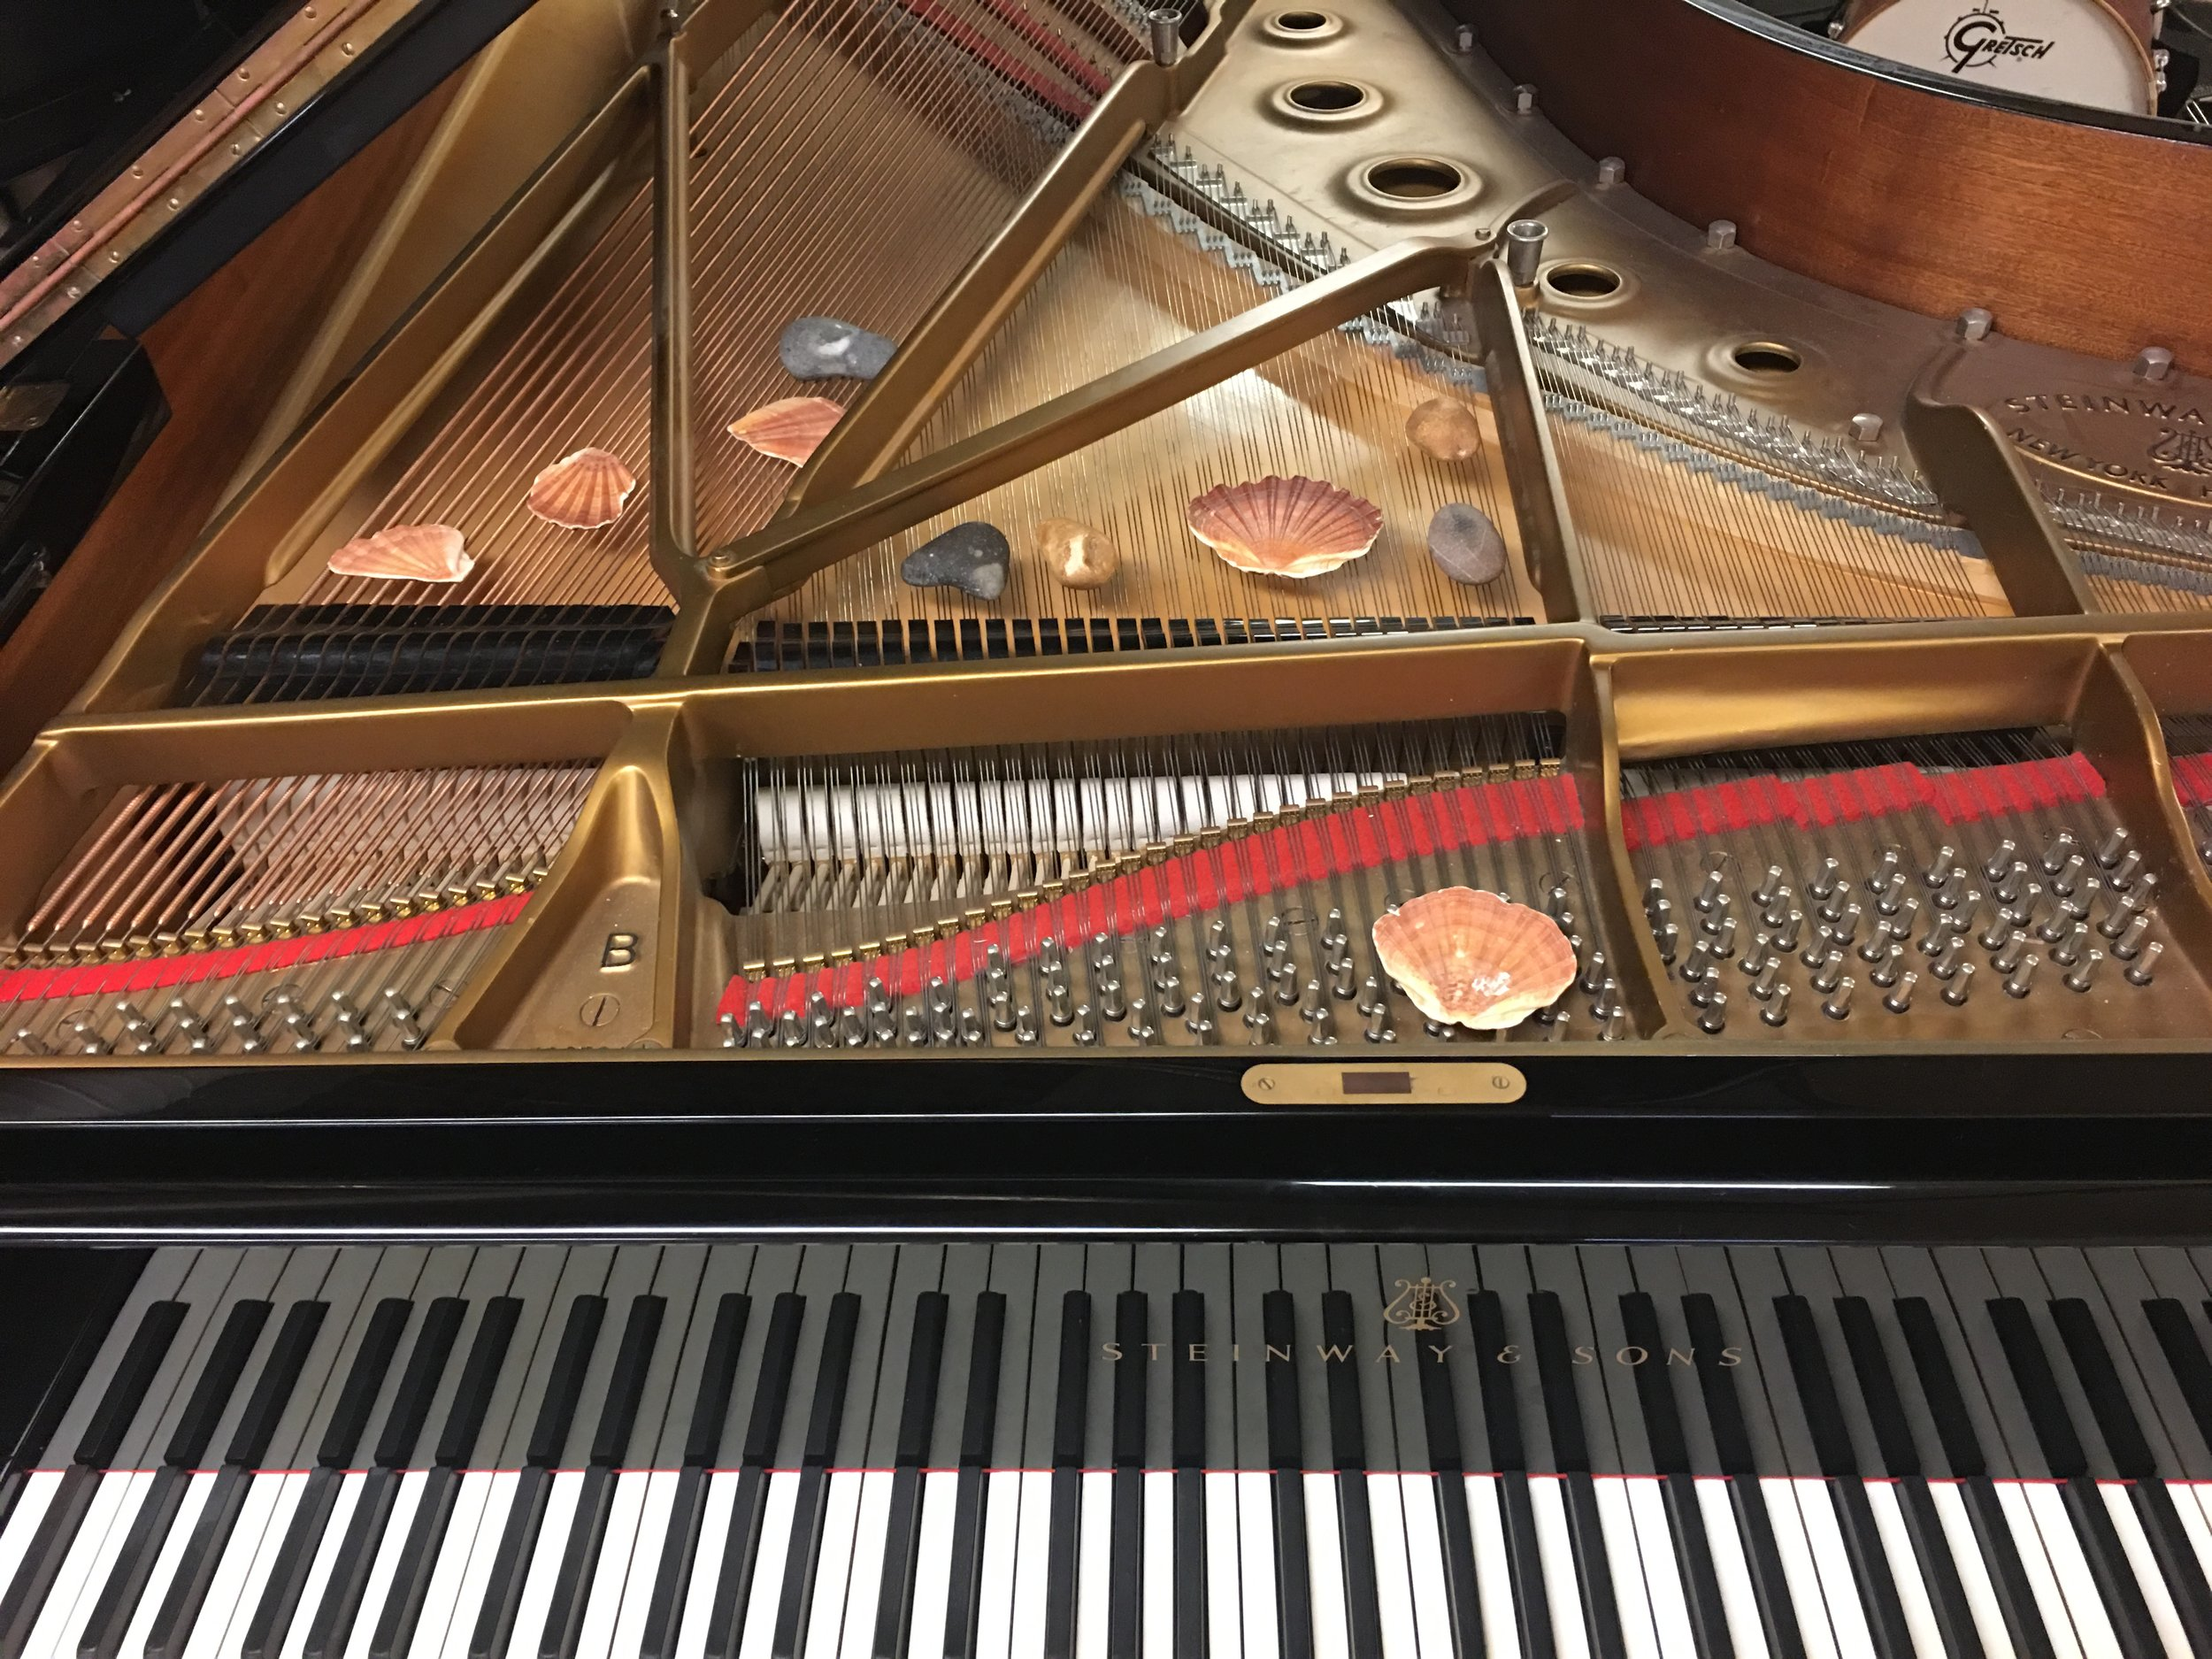 Rocks and shells placed on the strings inside the piano